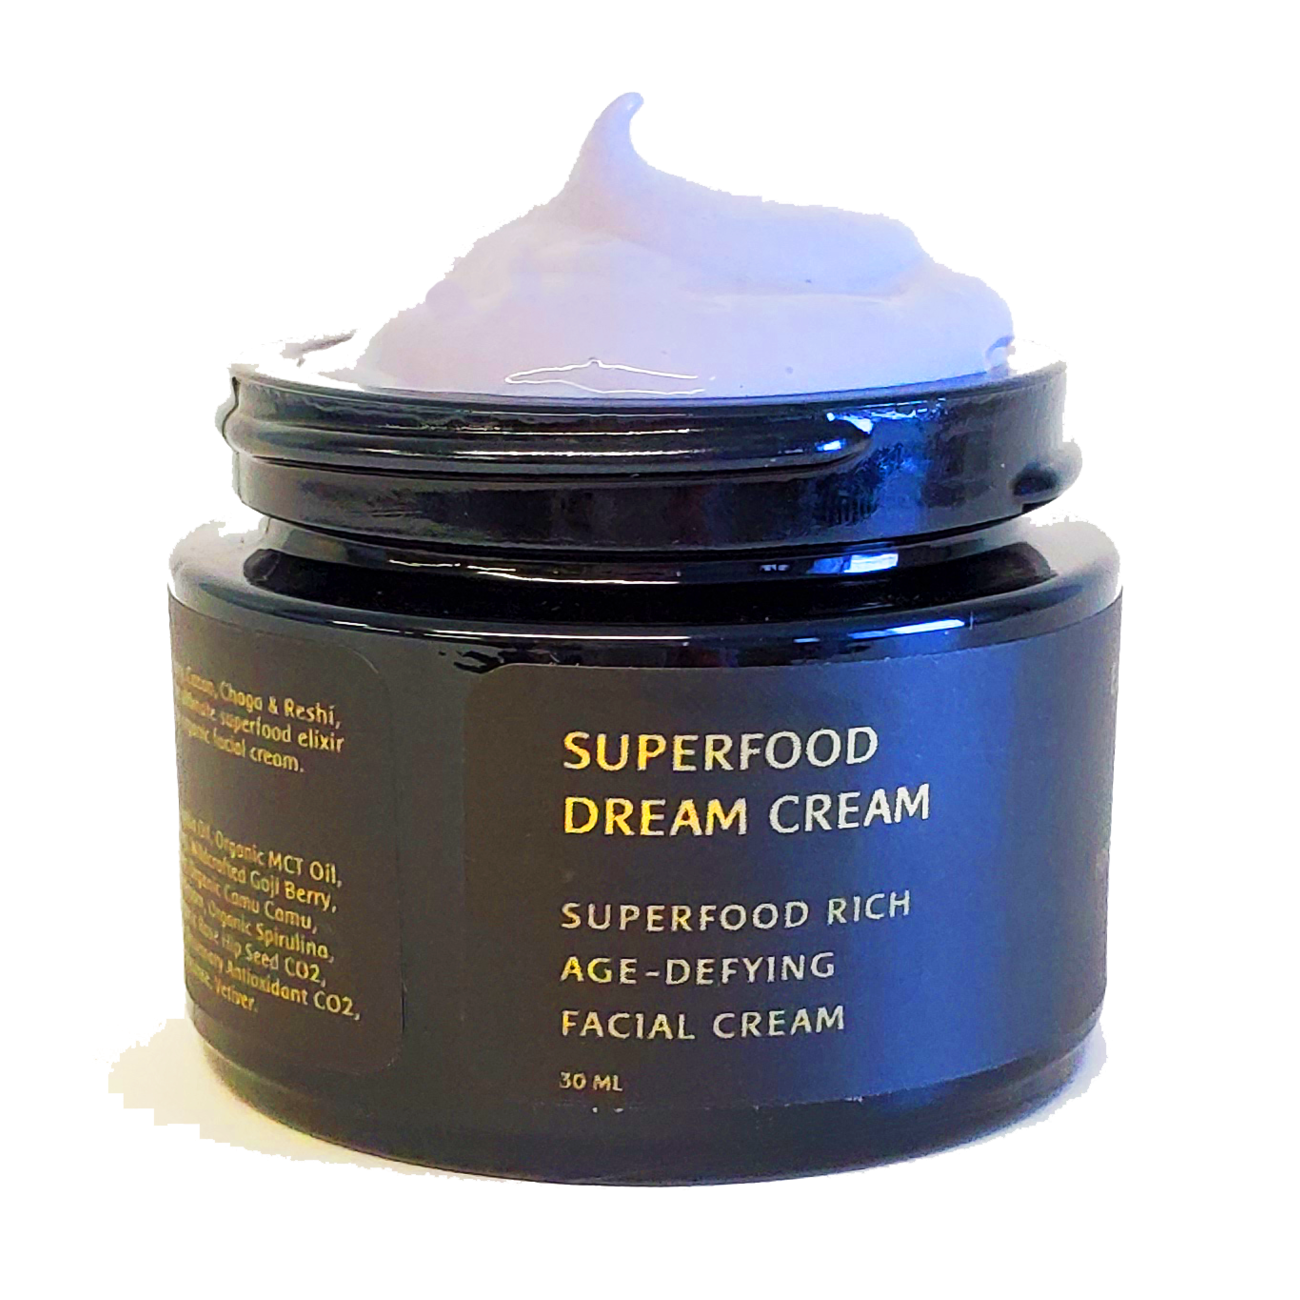 Superfood Dream Cream